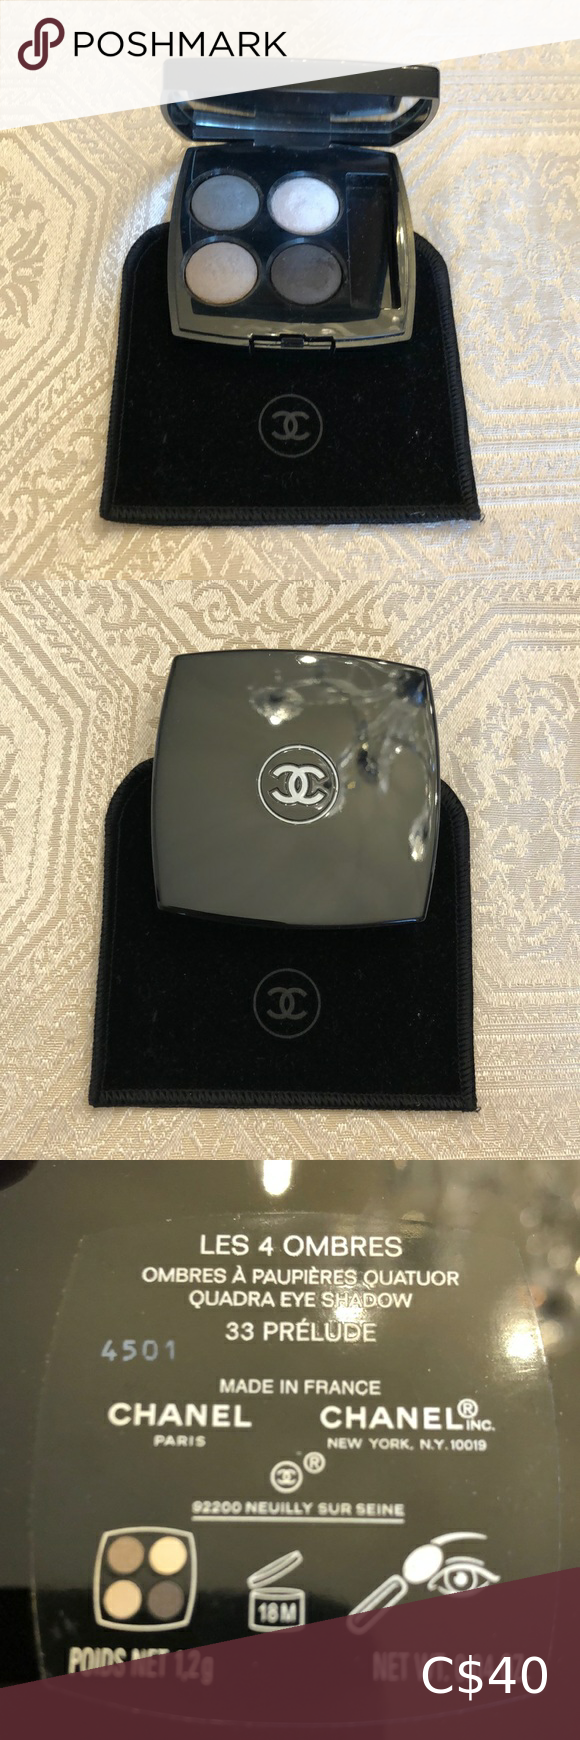 Chanel eyeshadow gift with purchase in 2020 Chanel